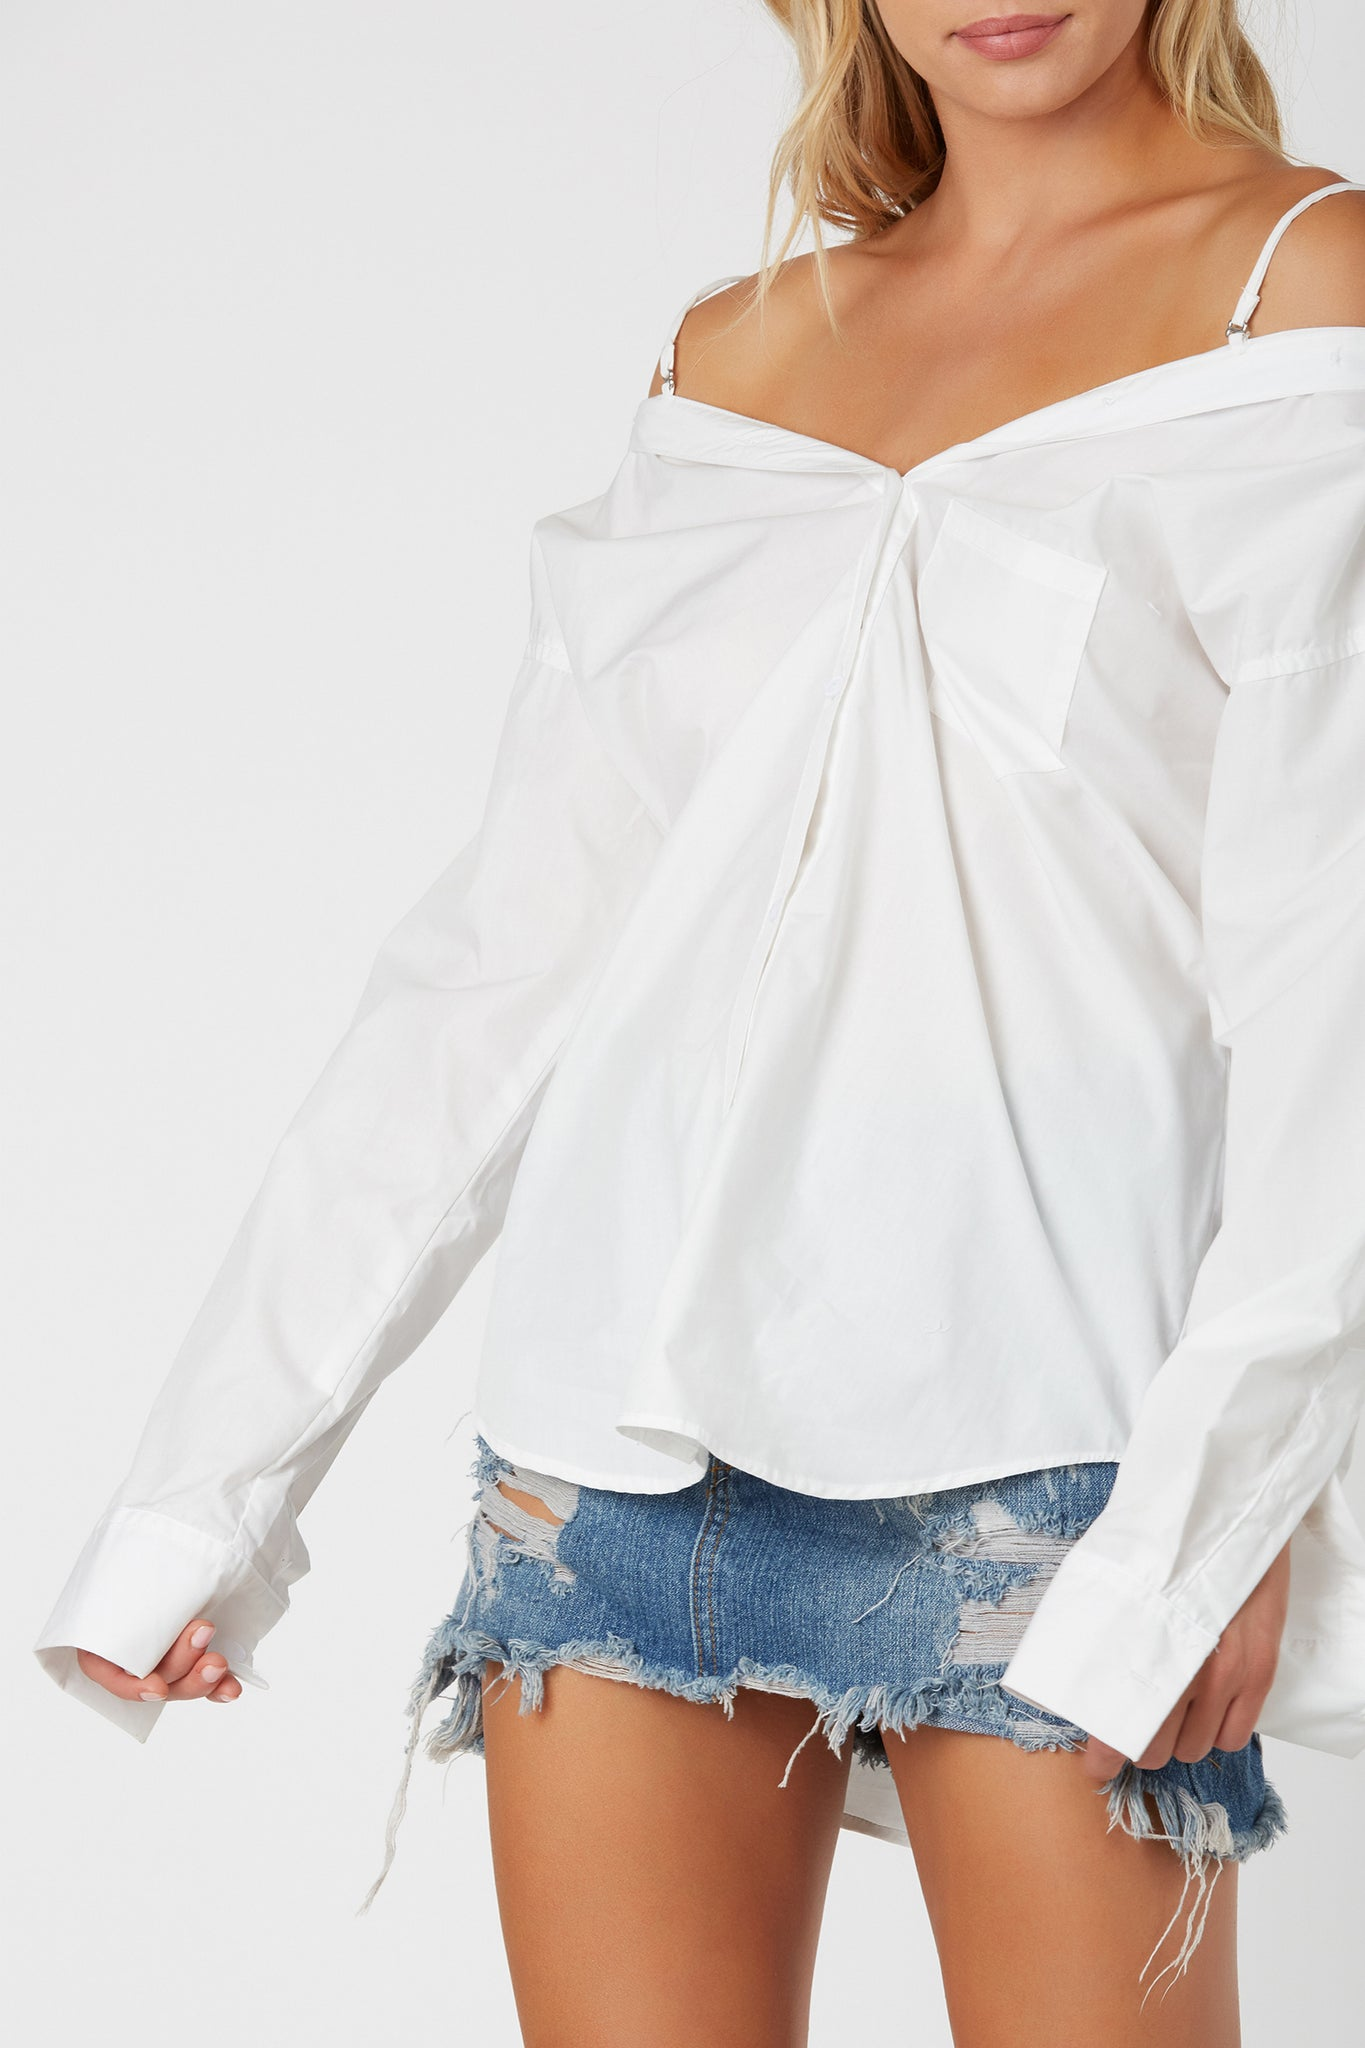 Flattering oversized button down with trendy off shoulder design. Cold shoulder spaghetti straps with oversized fit.